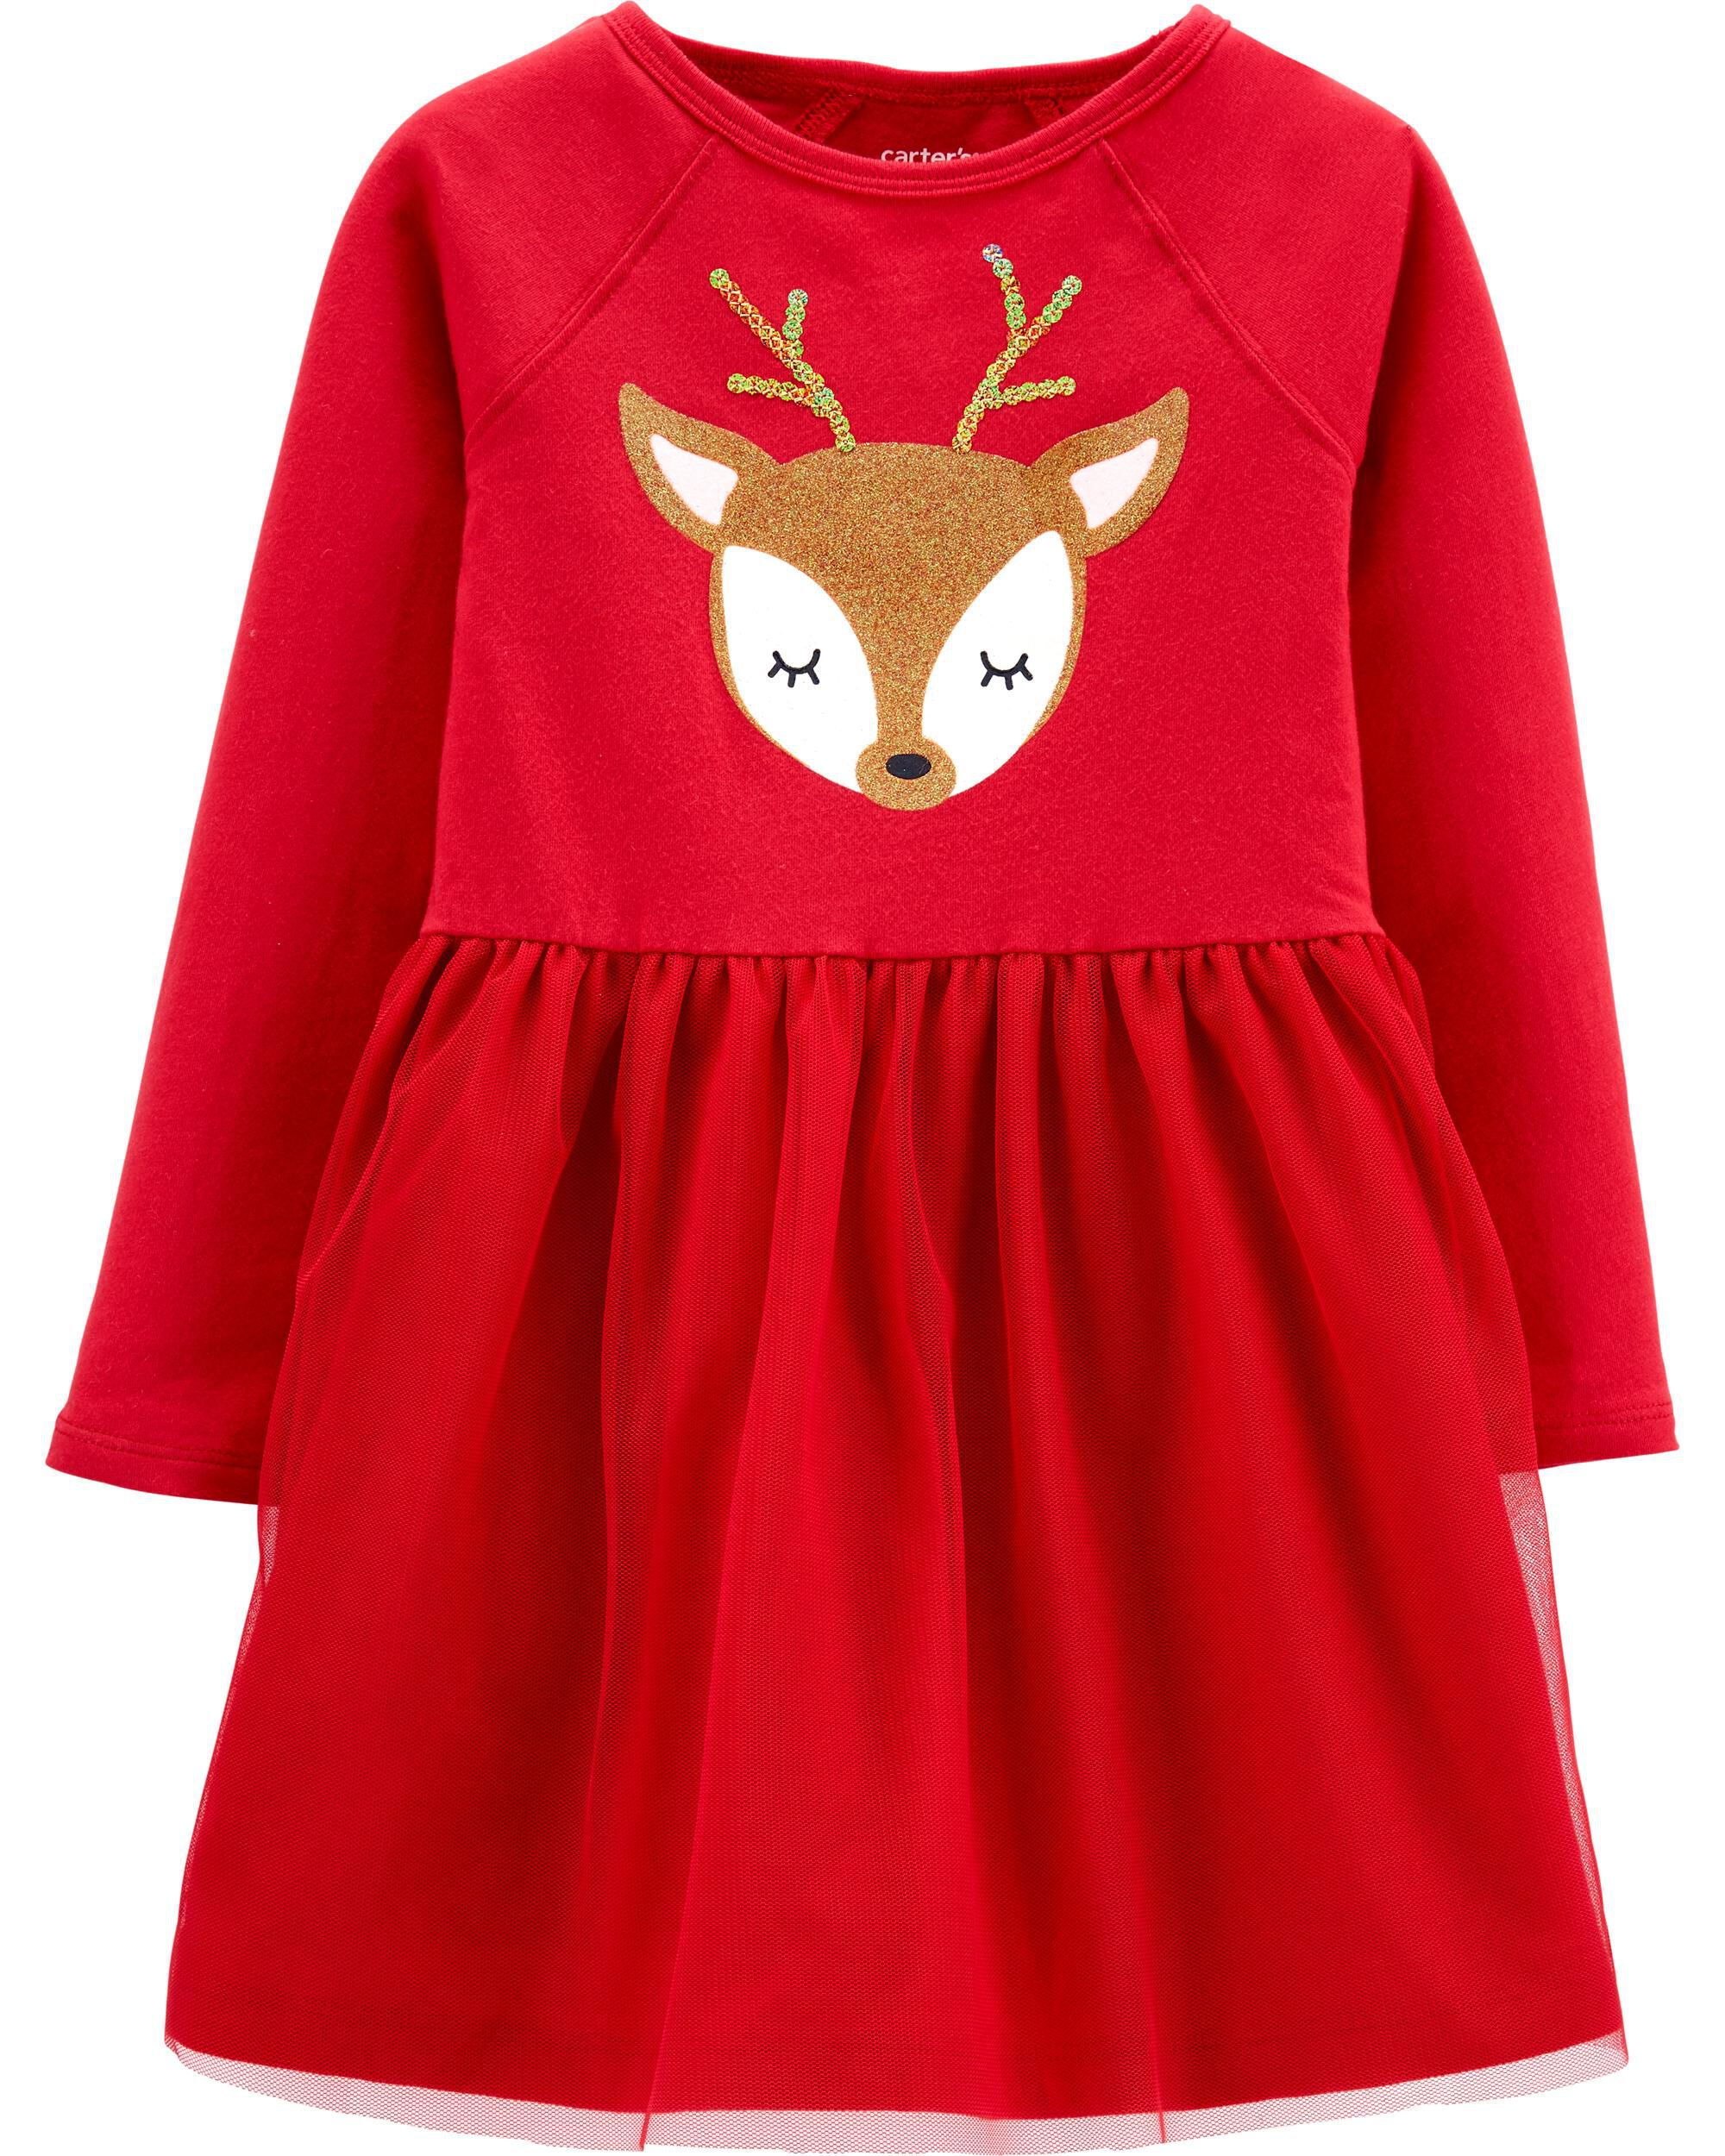 Toddler Girls 3T Red with lots of sparkle  Christmas Dress OSHKOSH